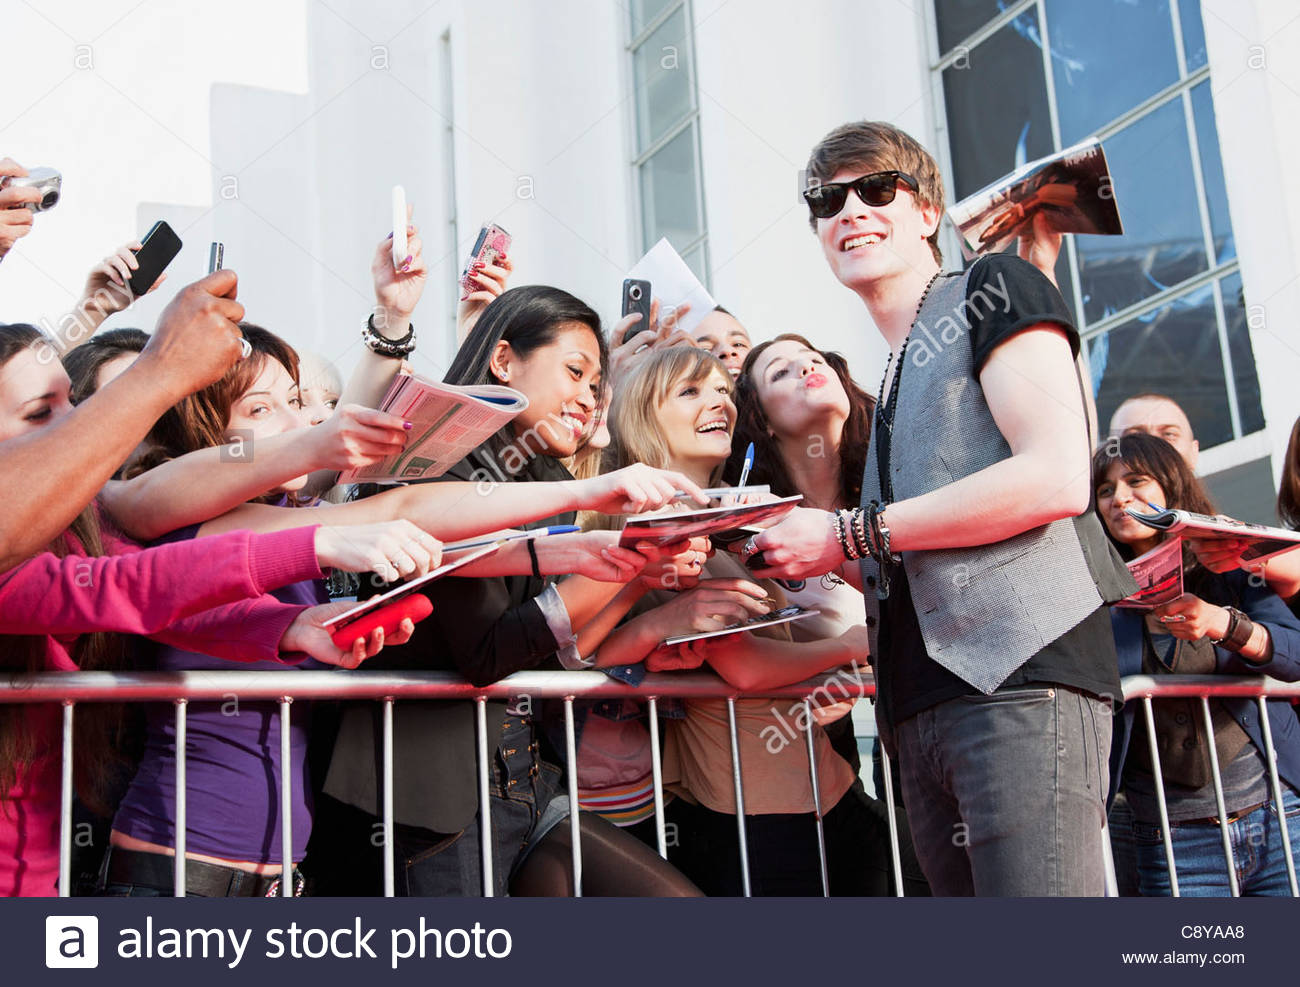 Fans taking pictures with cell phone behind barrier stock photo - Celebrity Signing Autographs For Fans